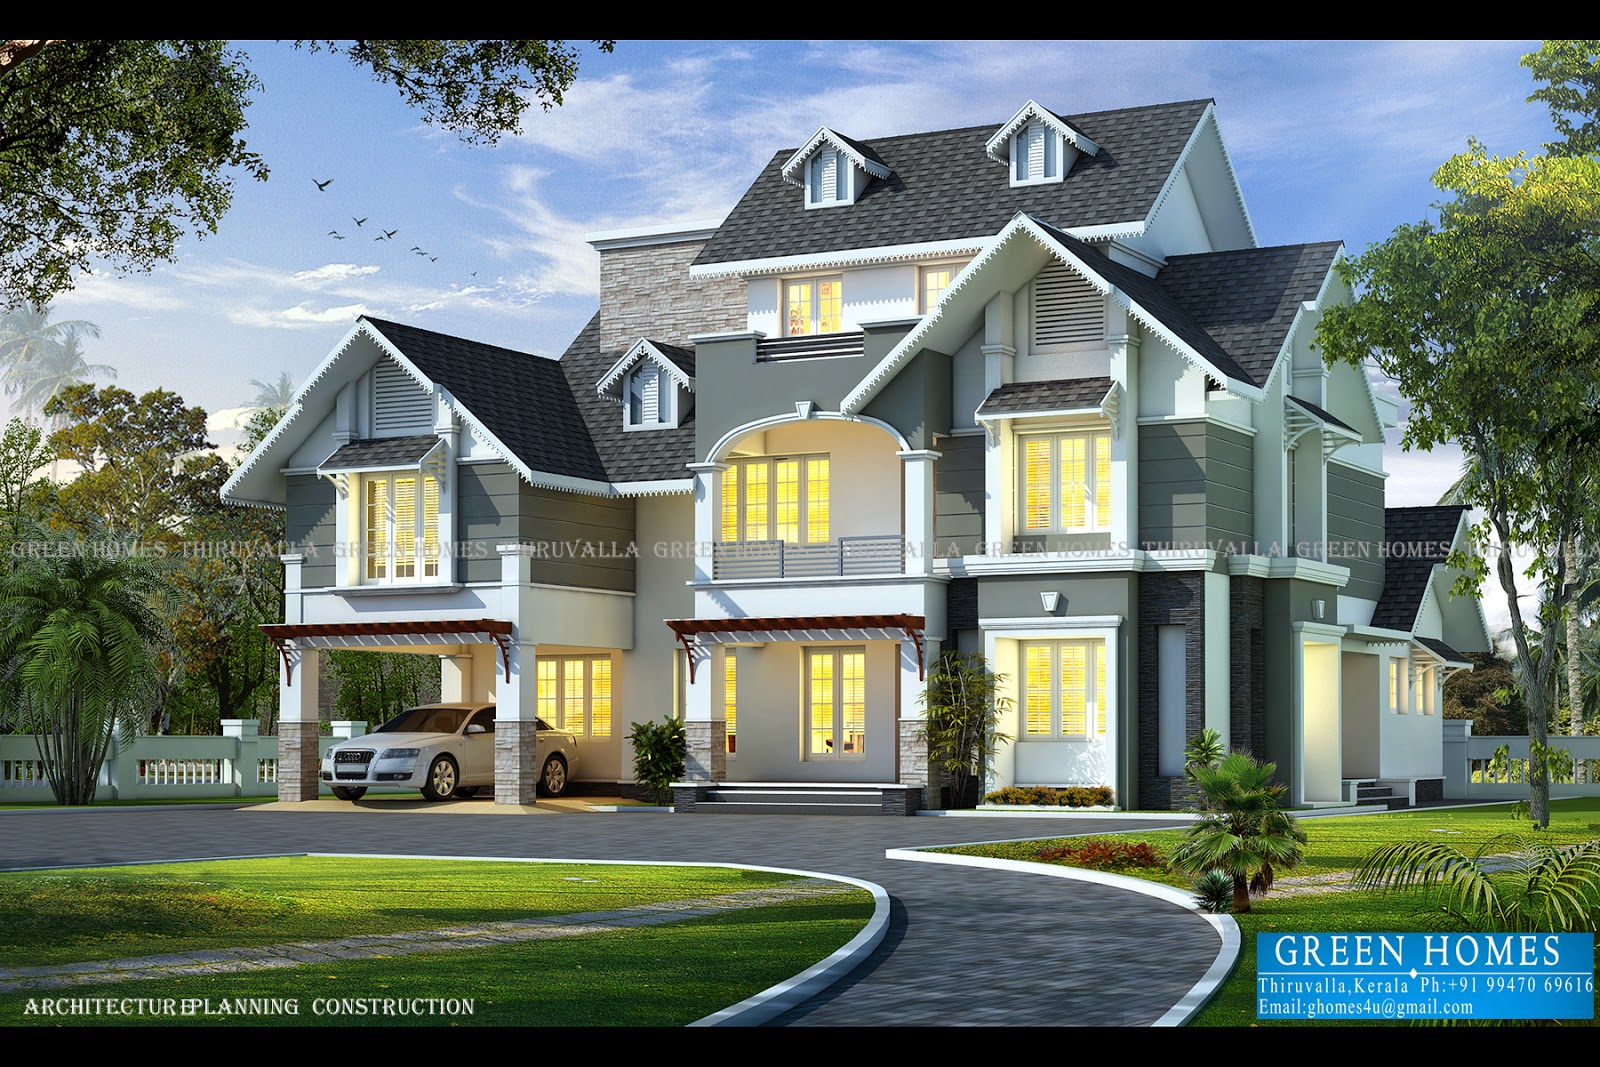 Green homes awesome european style house in 3650 sq feet for European style house plans